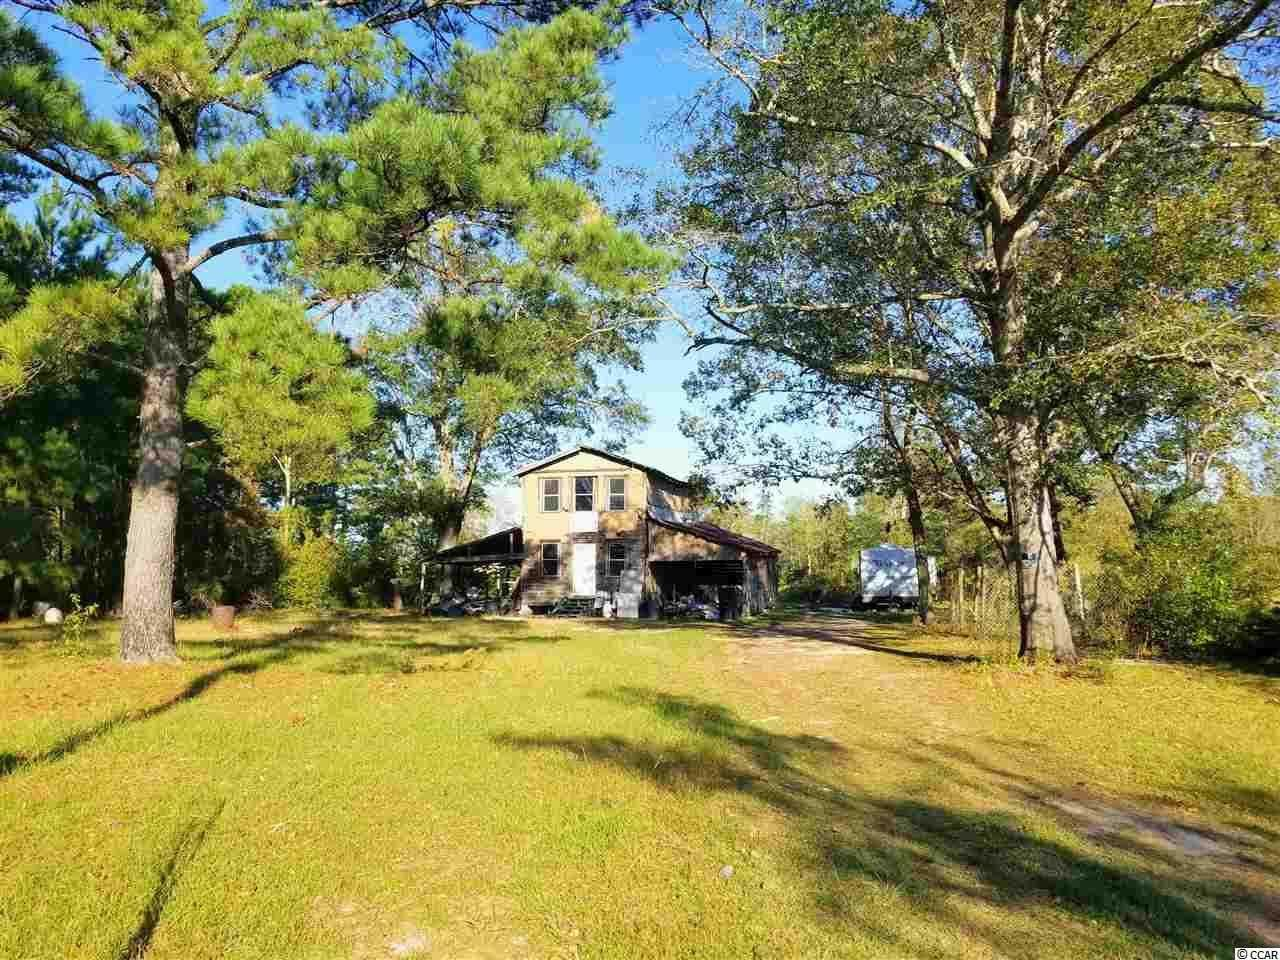 Looking for a home in Seaside Plantation? Search the